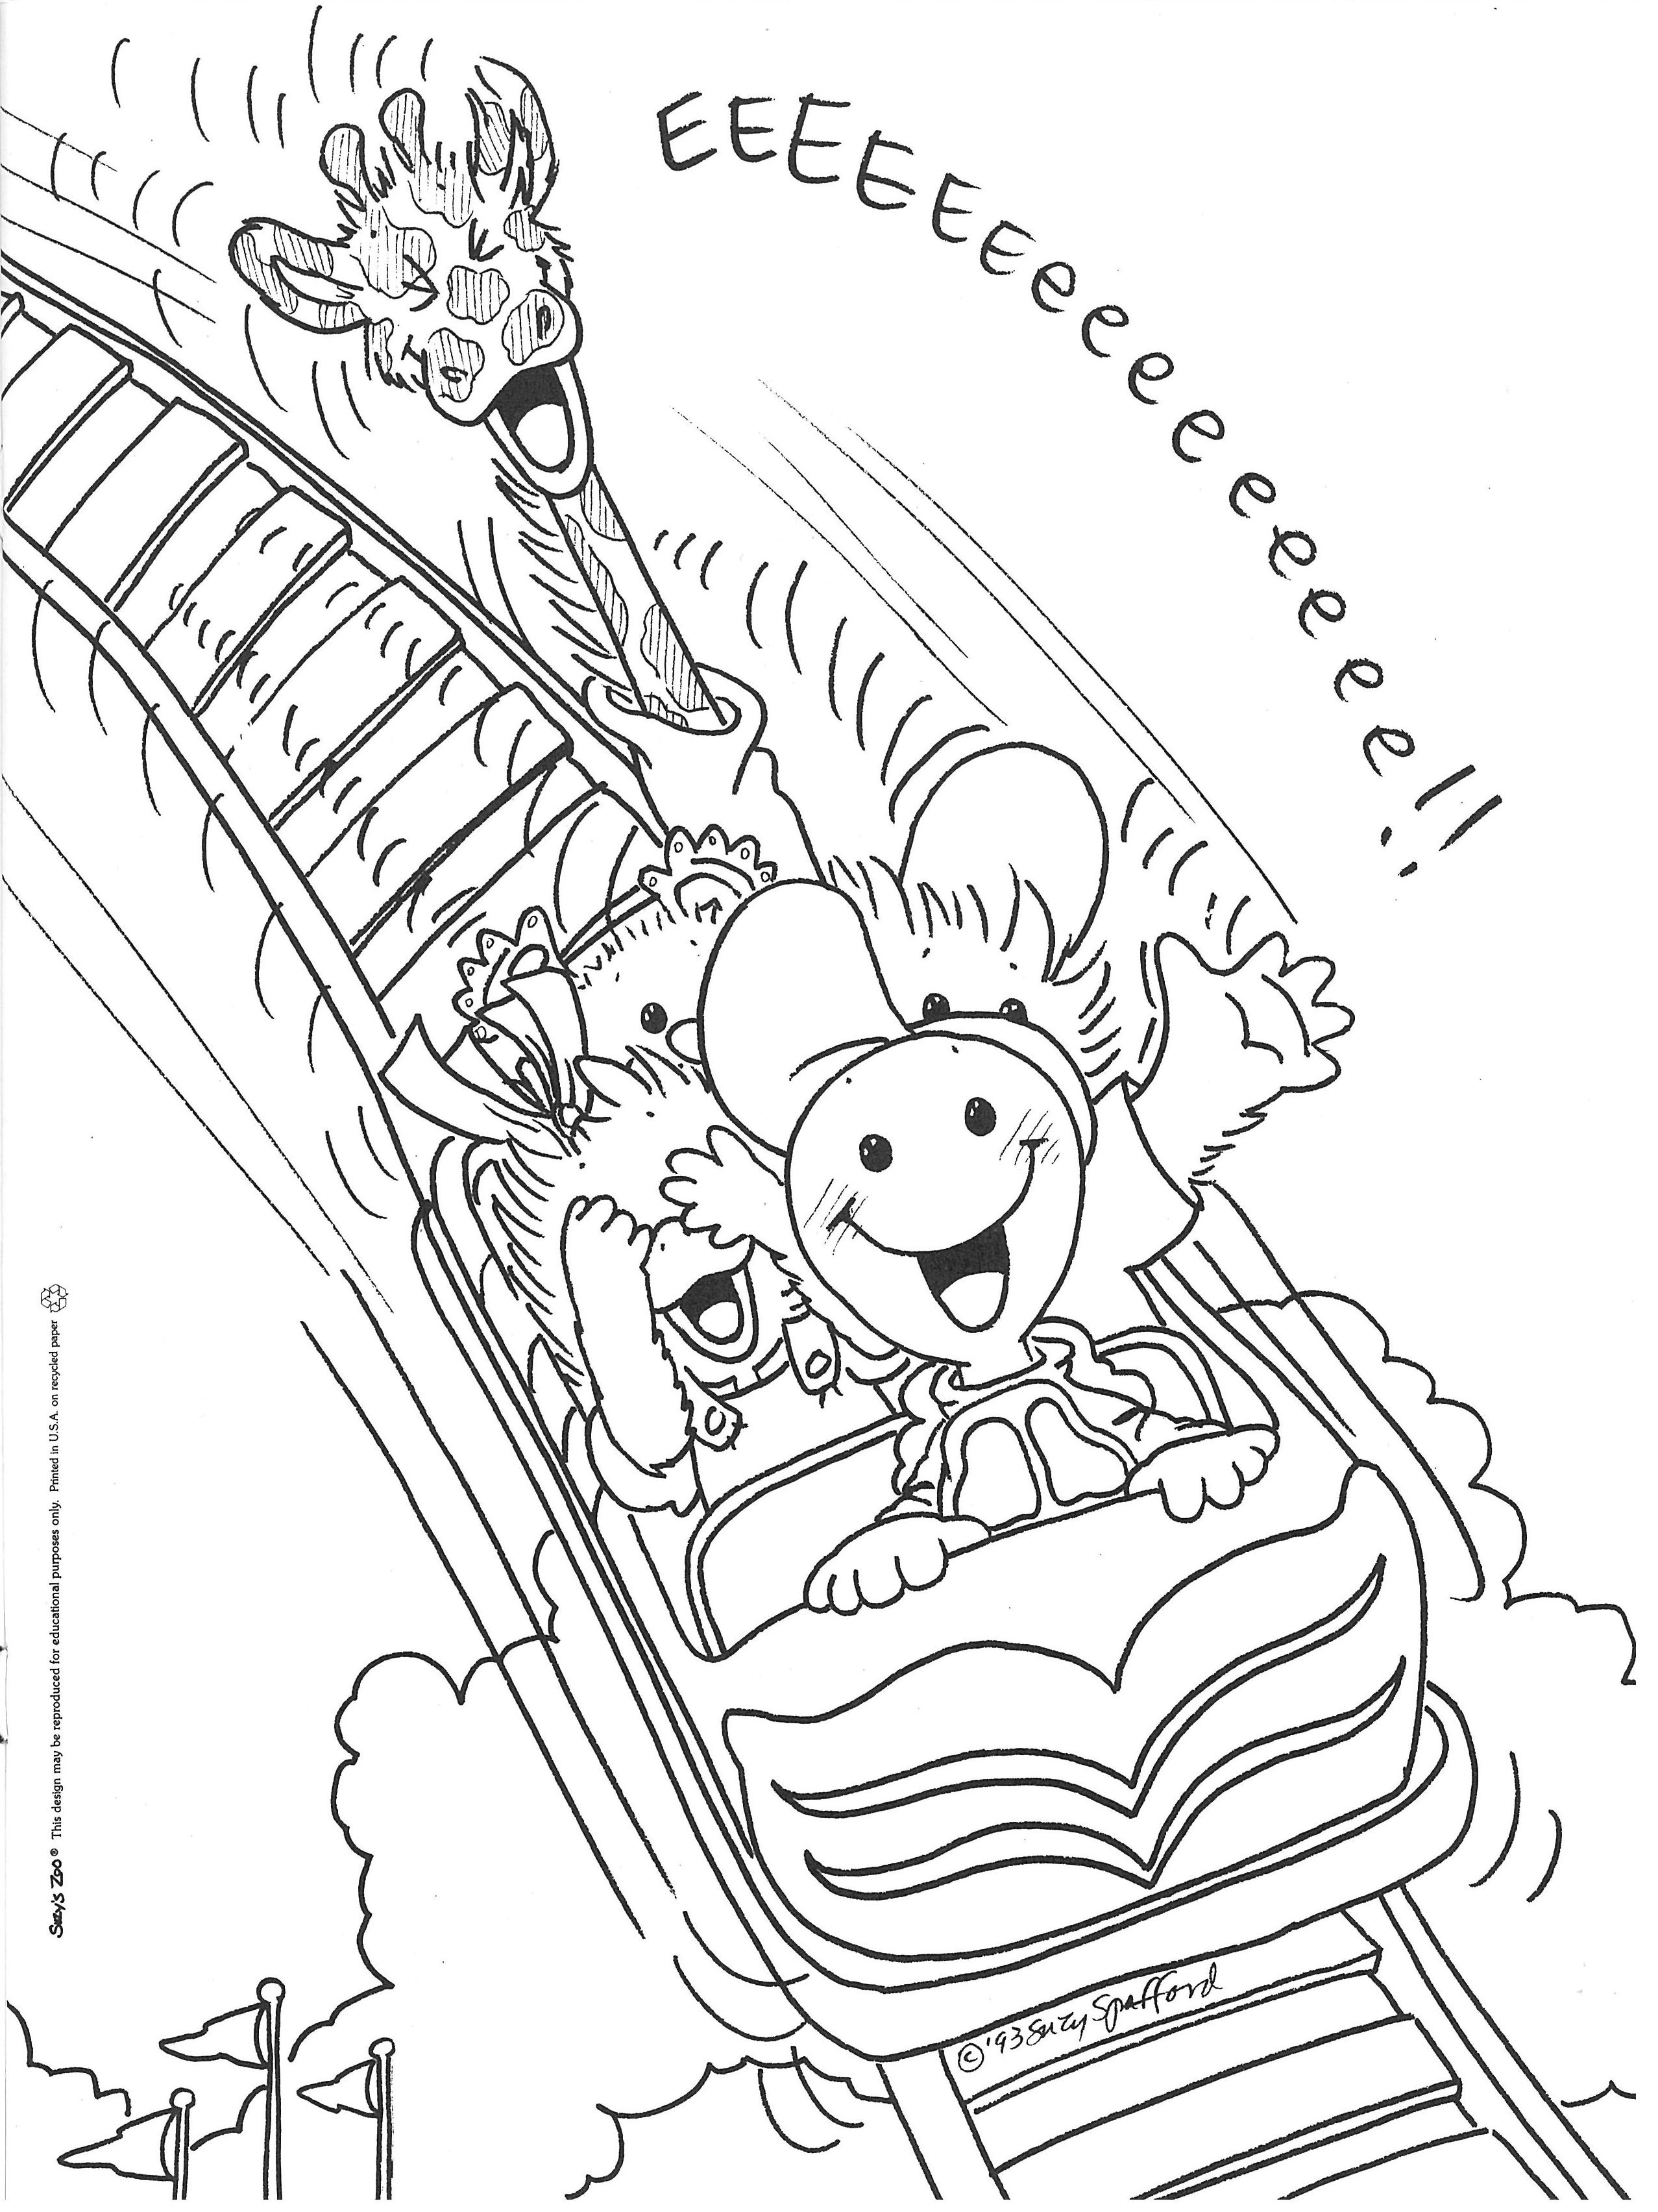 Roller Coaster Coloring Pages Download And Print For Free Dinosaur Coloring Pages Zoo Coloring Pages Coloring Pages